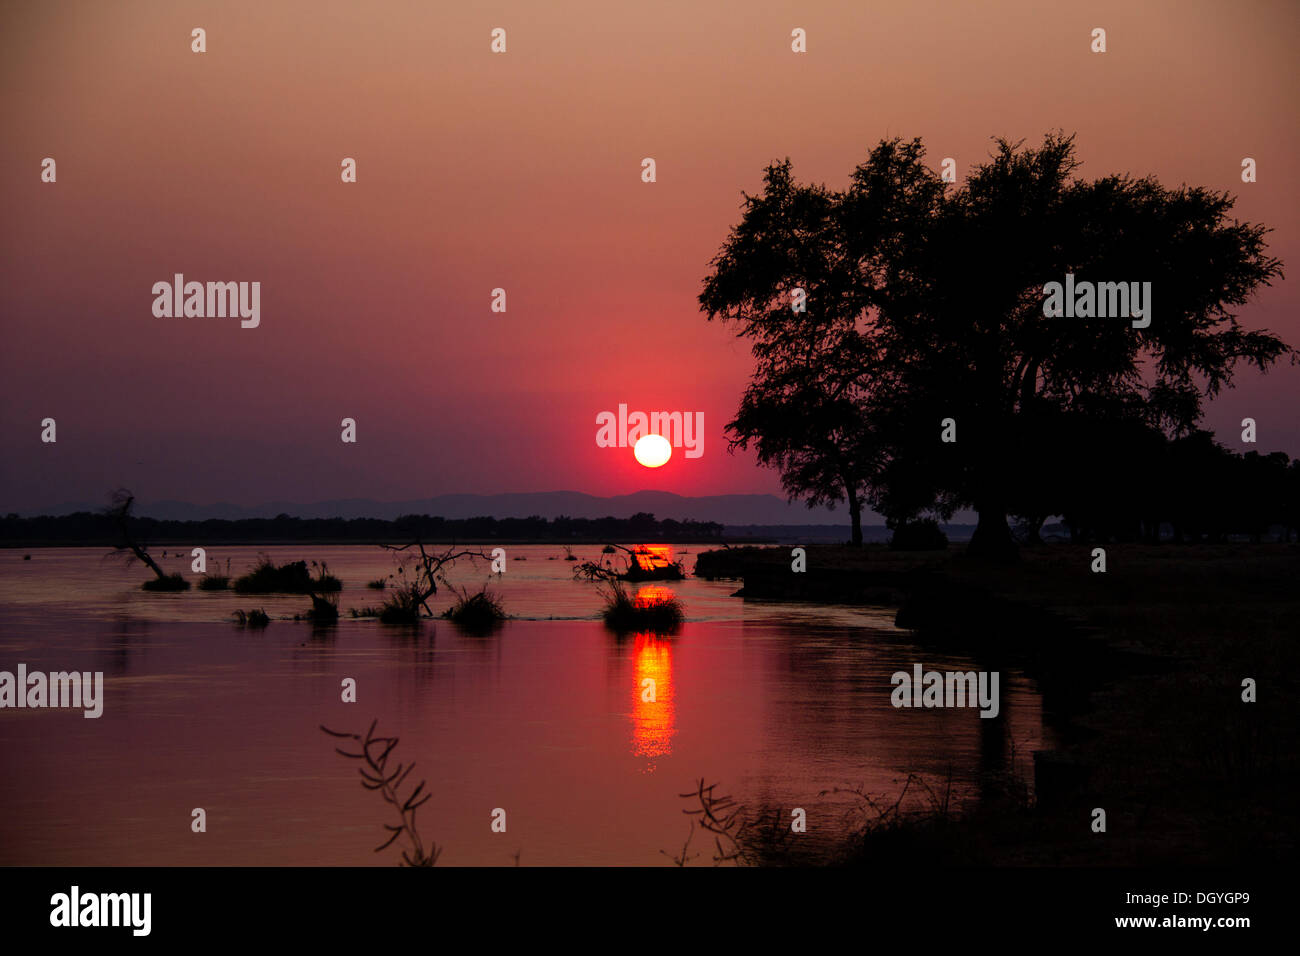 Sunset over the Zambezi, Mana Pools National Park, Zimbabwe, Africa - Stock Image